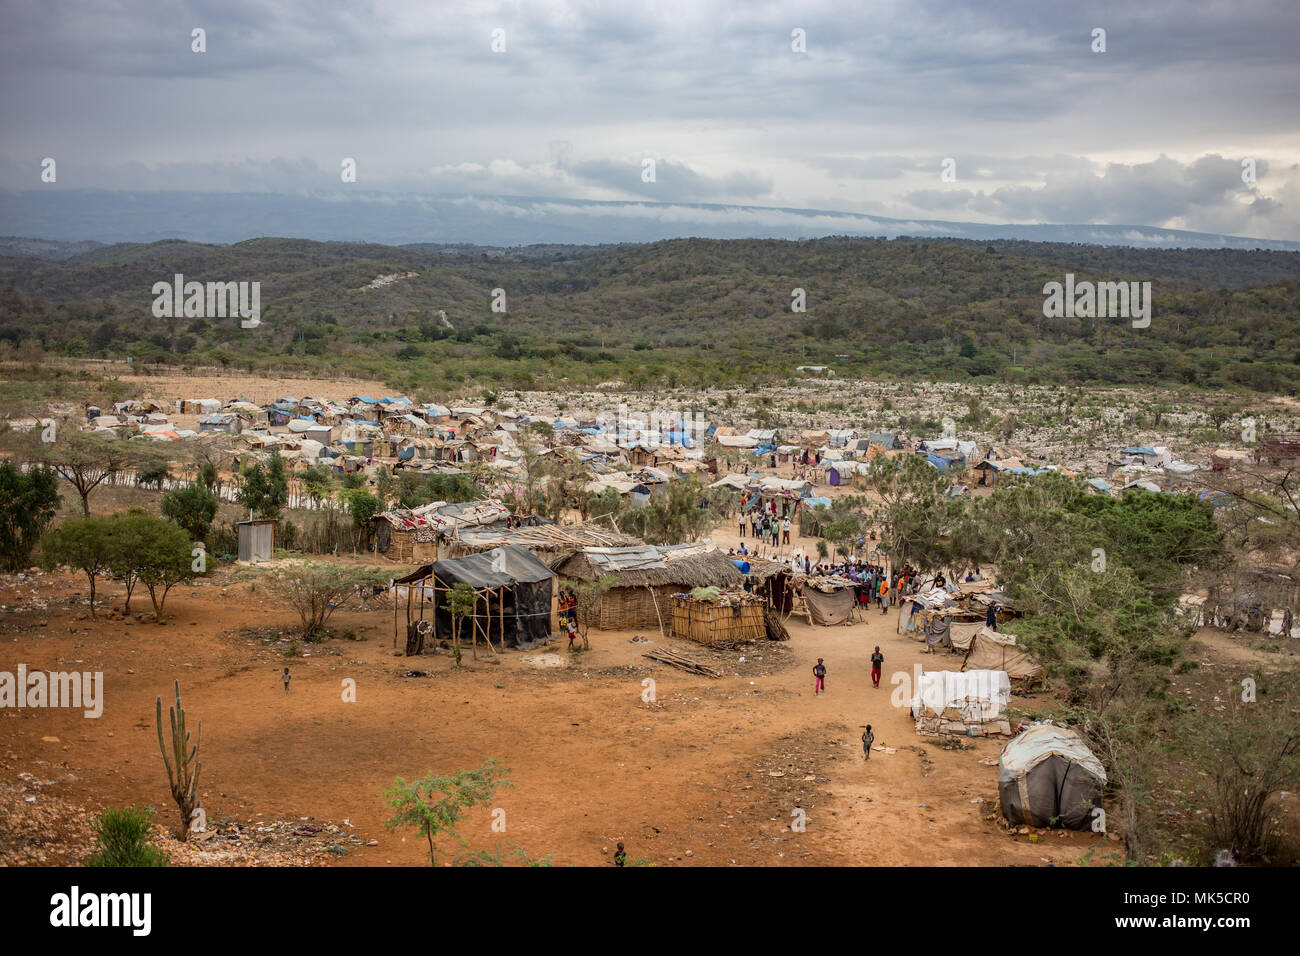 Refugee border camp in Haiti - Stock Image